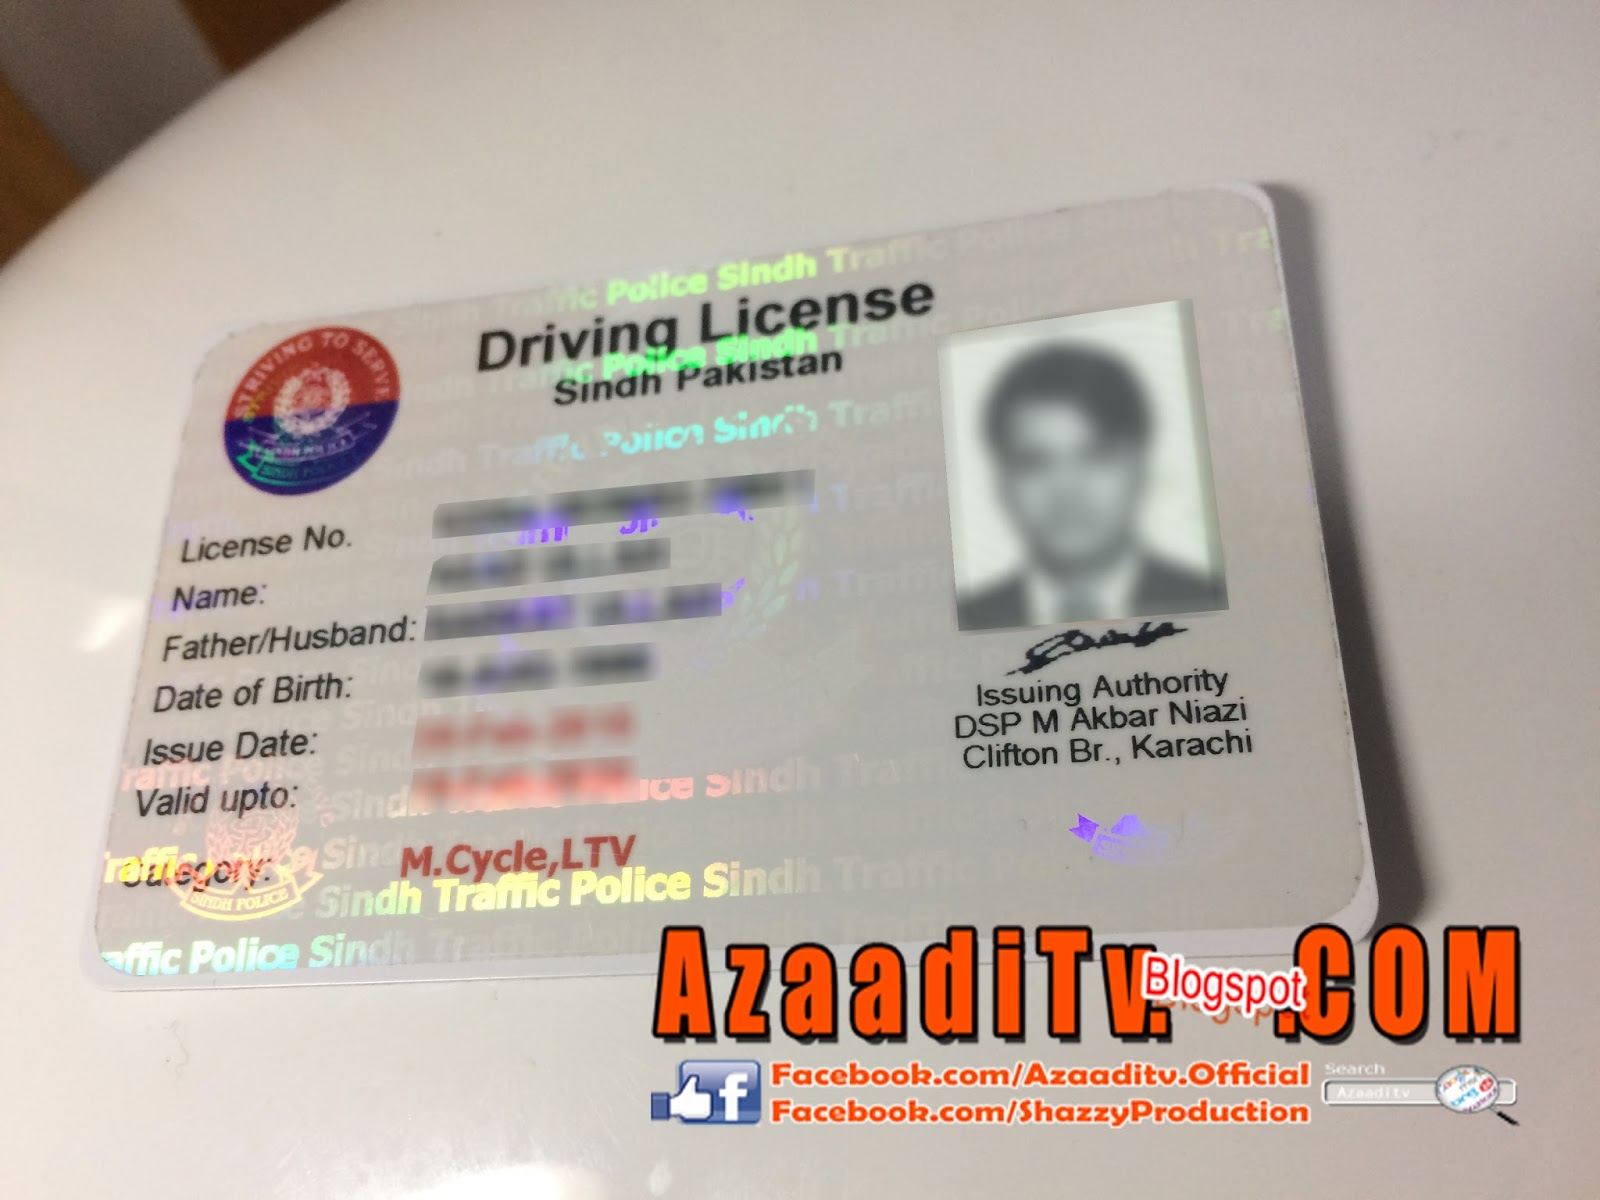 Driving Licence for Sindh,Pakistan Sample pics and Info